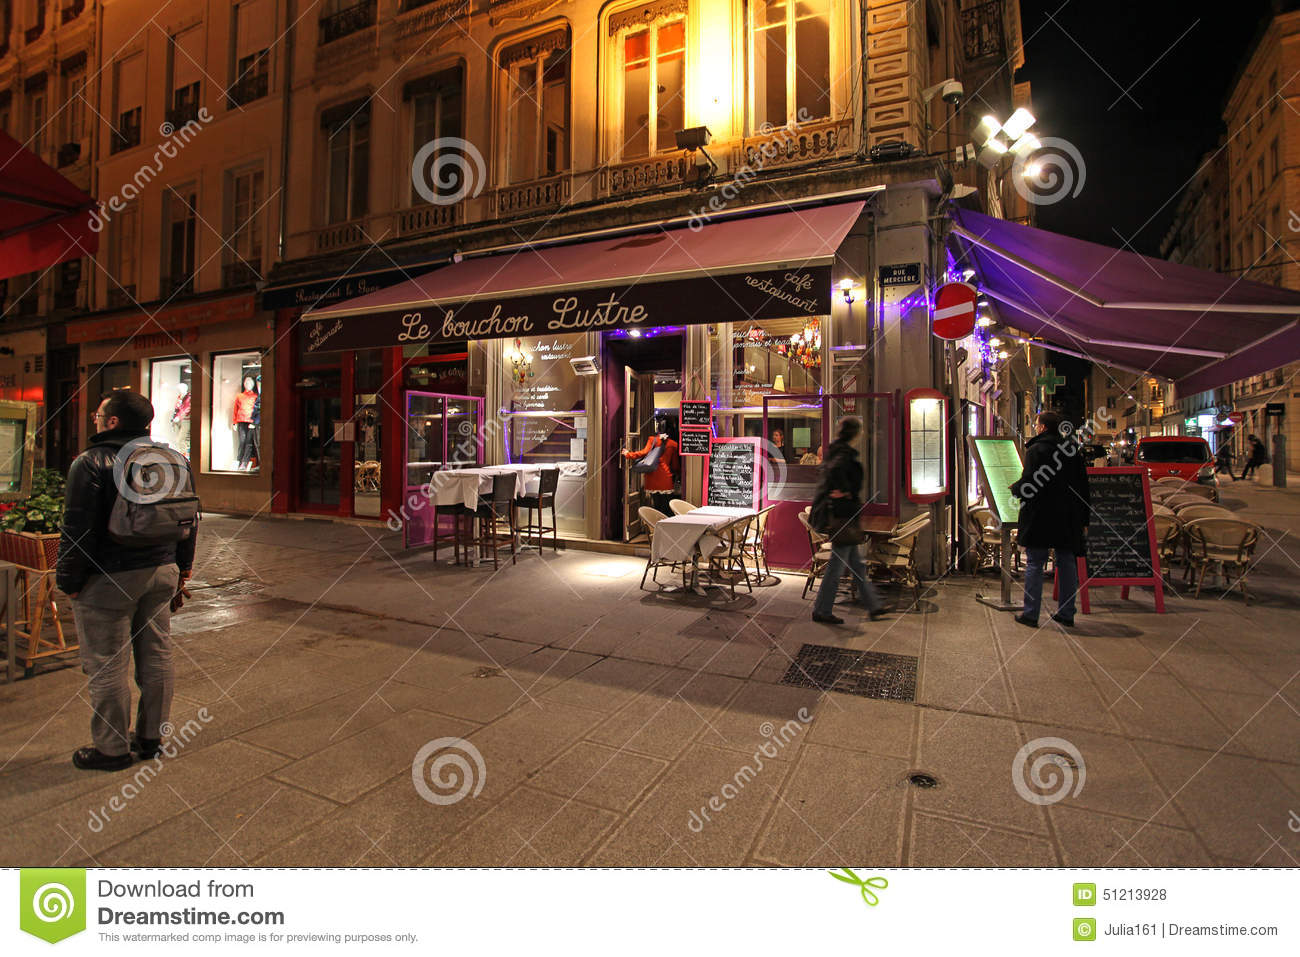 lyon restaurants by night france editorial stock photo image 51213928. Black Bedroom Furniture Sets. Home Design Ideas